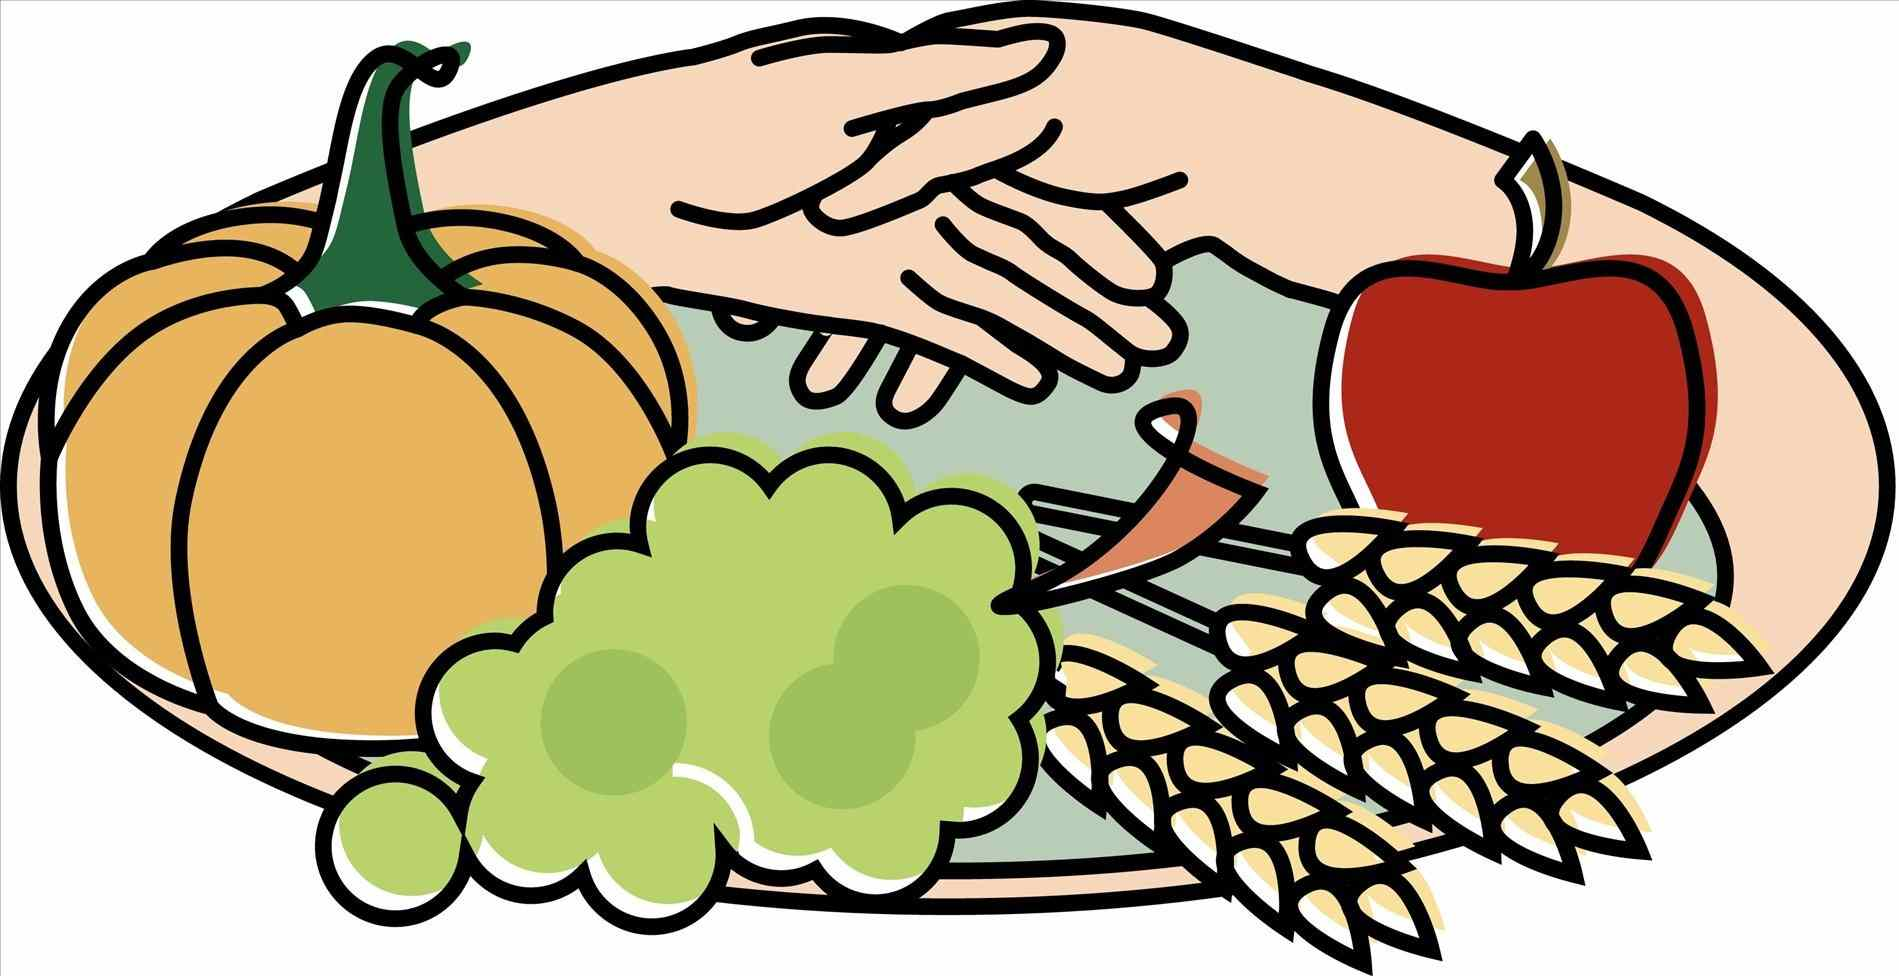 1899x976 Family Turkey Dinner Clipart